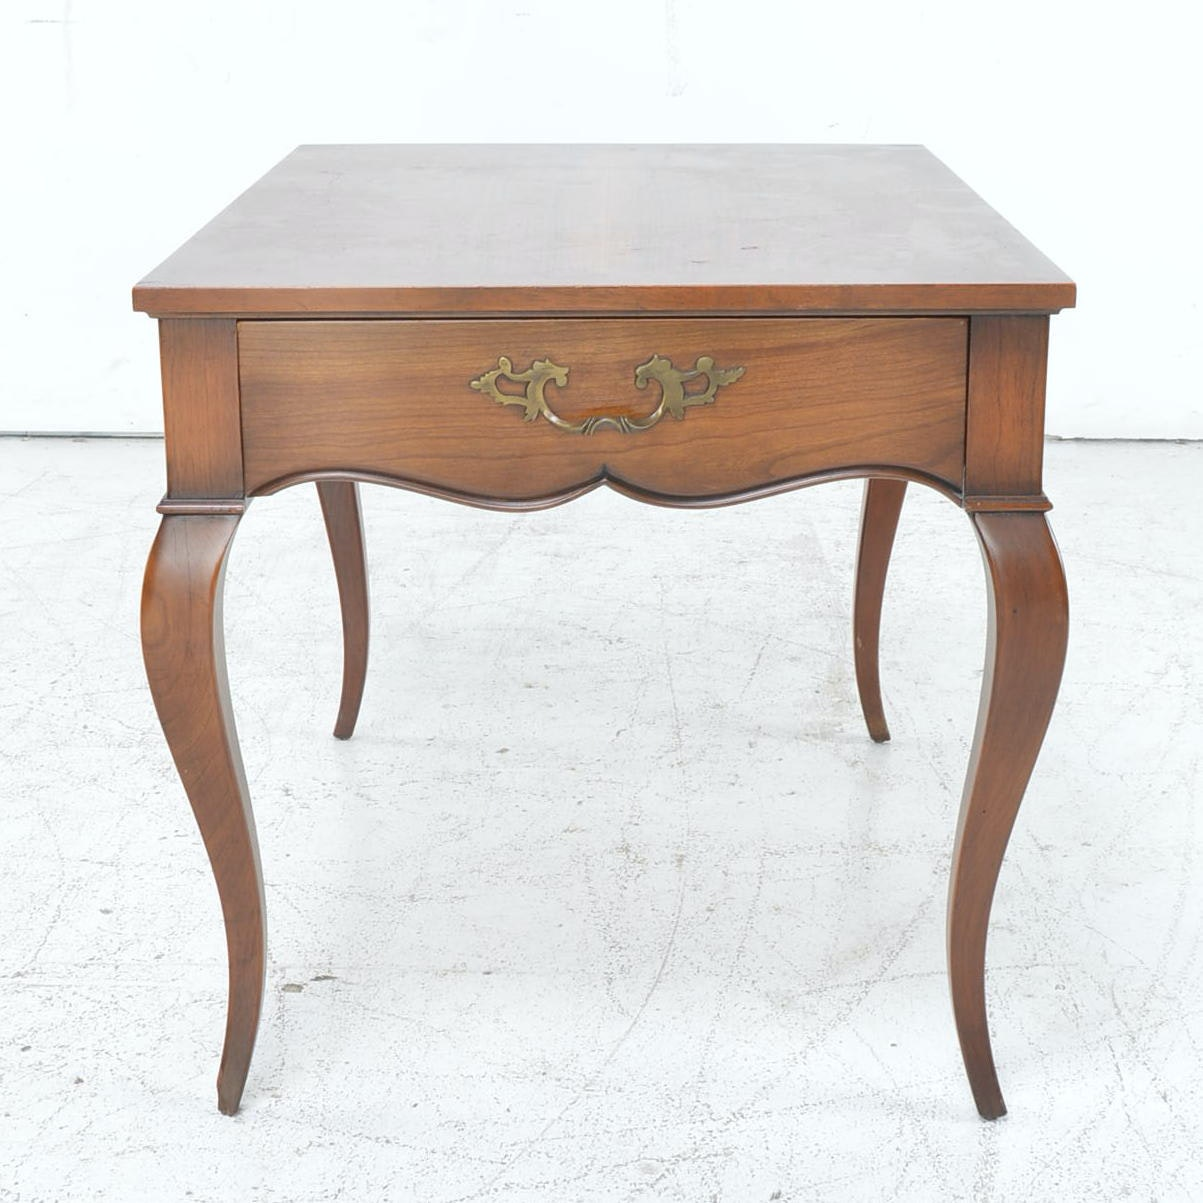 French Provincial Style Cherry End Table by Baker - Milling Road